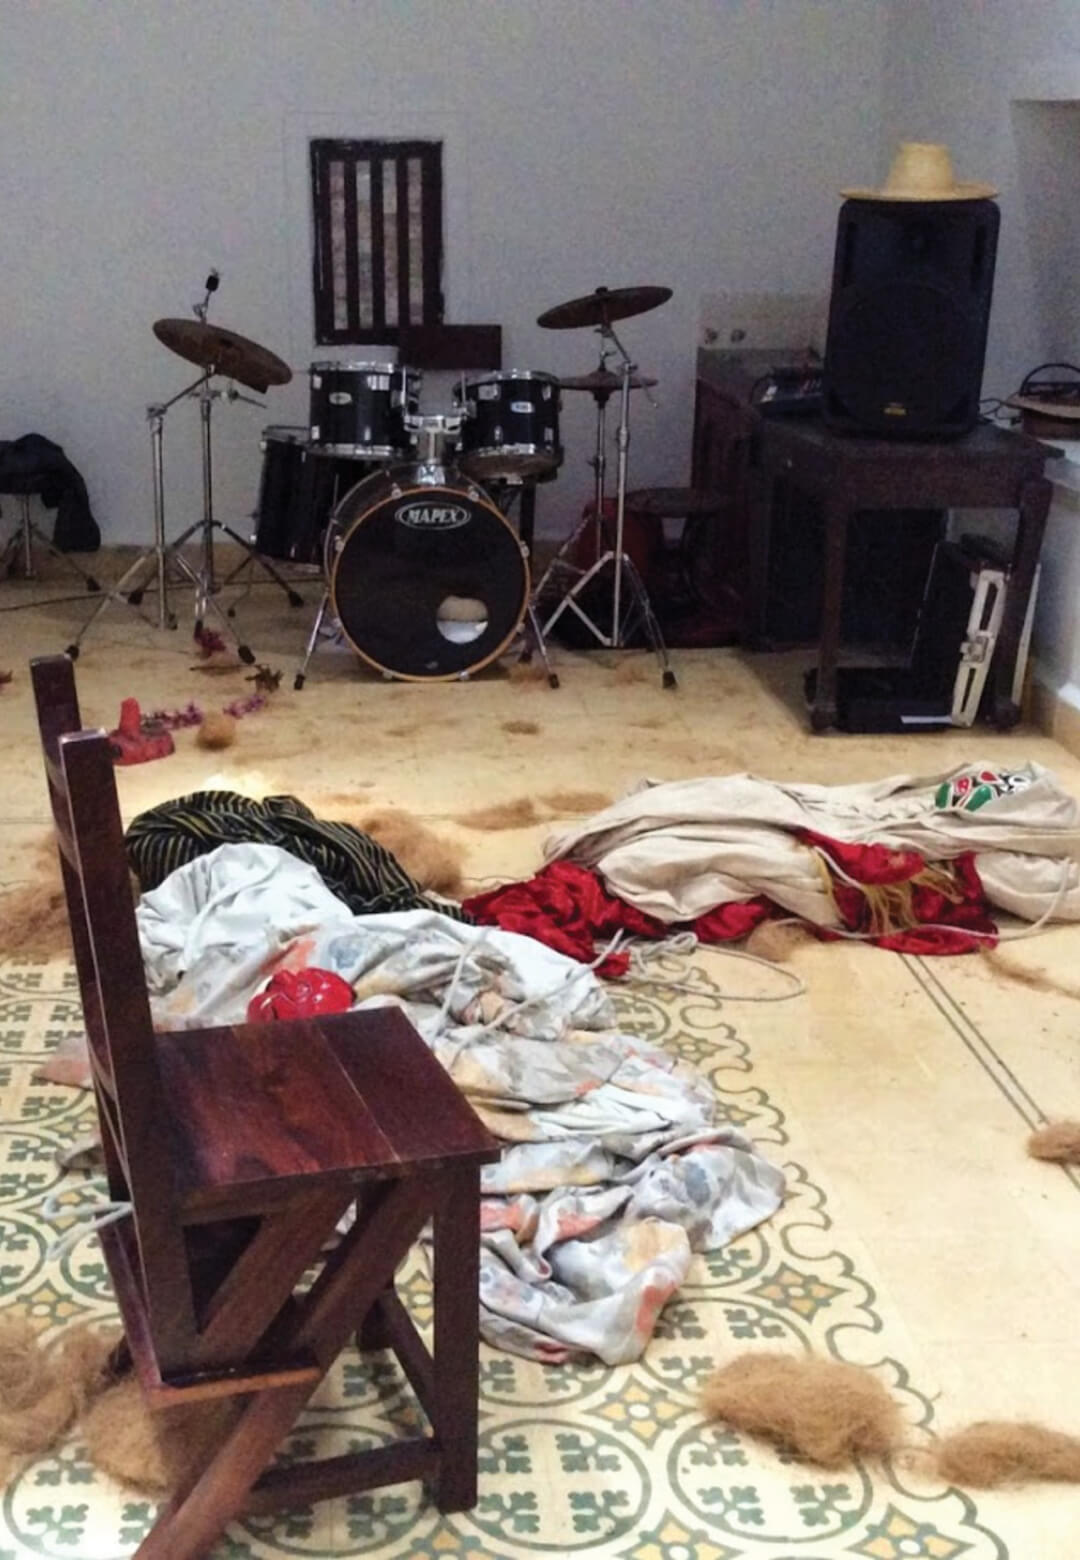 Remnants of a live art performance by Nikhil Chopra in August 2015 at the erstwhile HH Art Spaces in Siolim | STIRworld